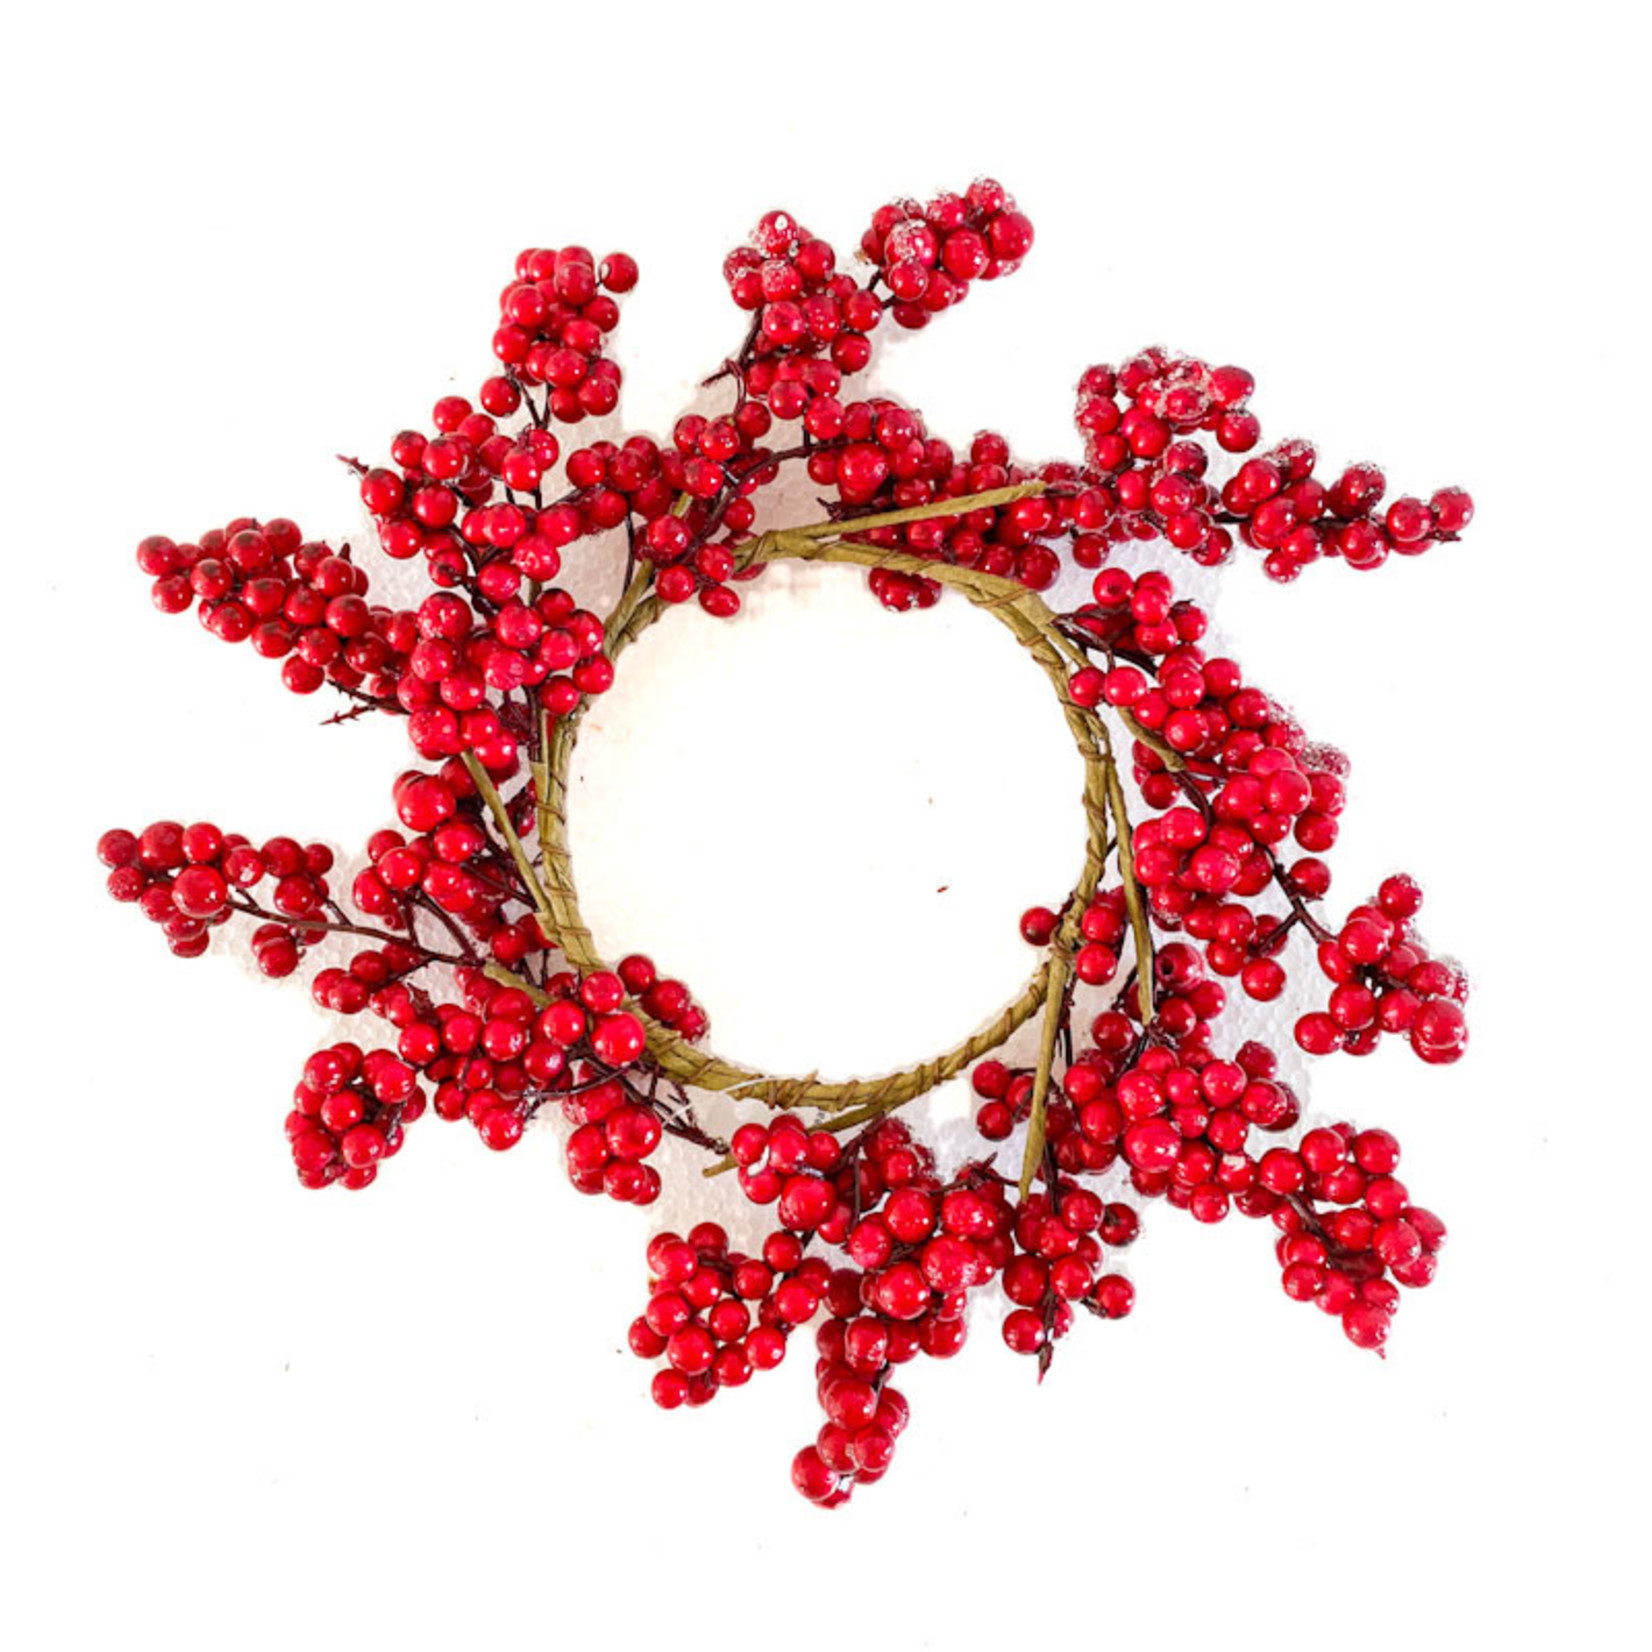 Candle Wreath - Red Berry